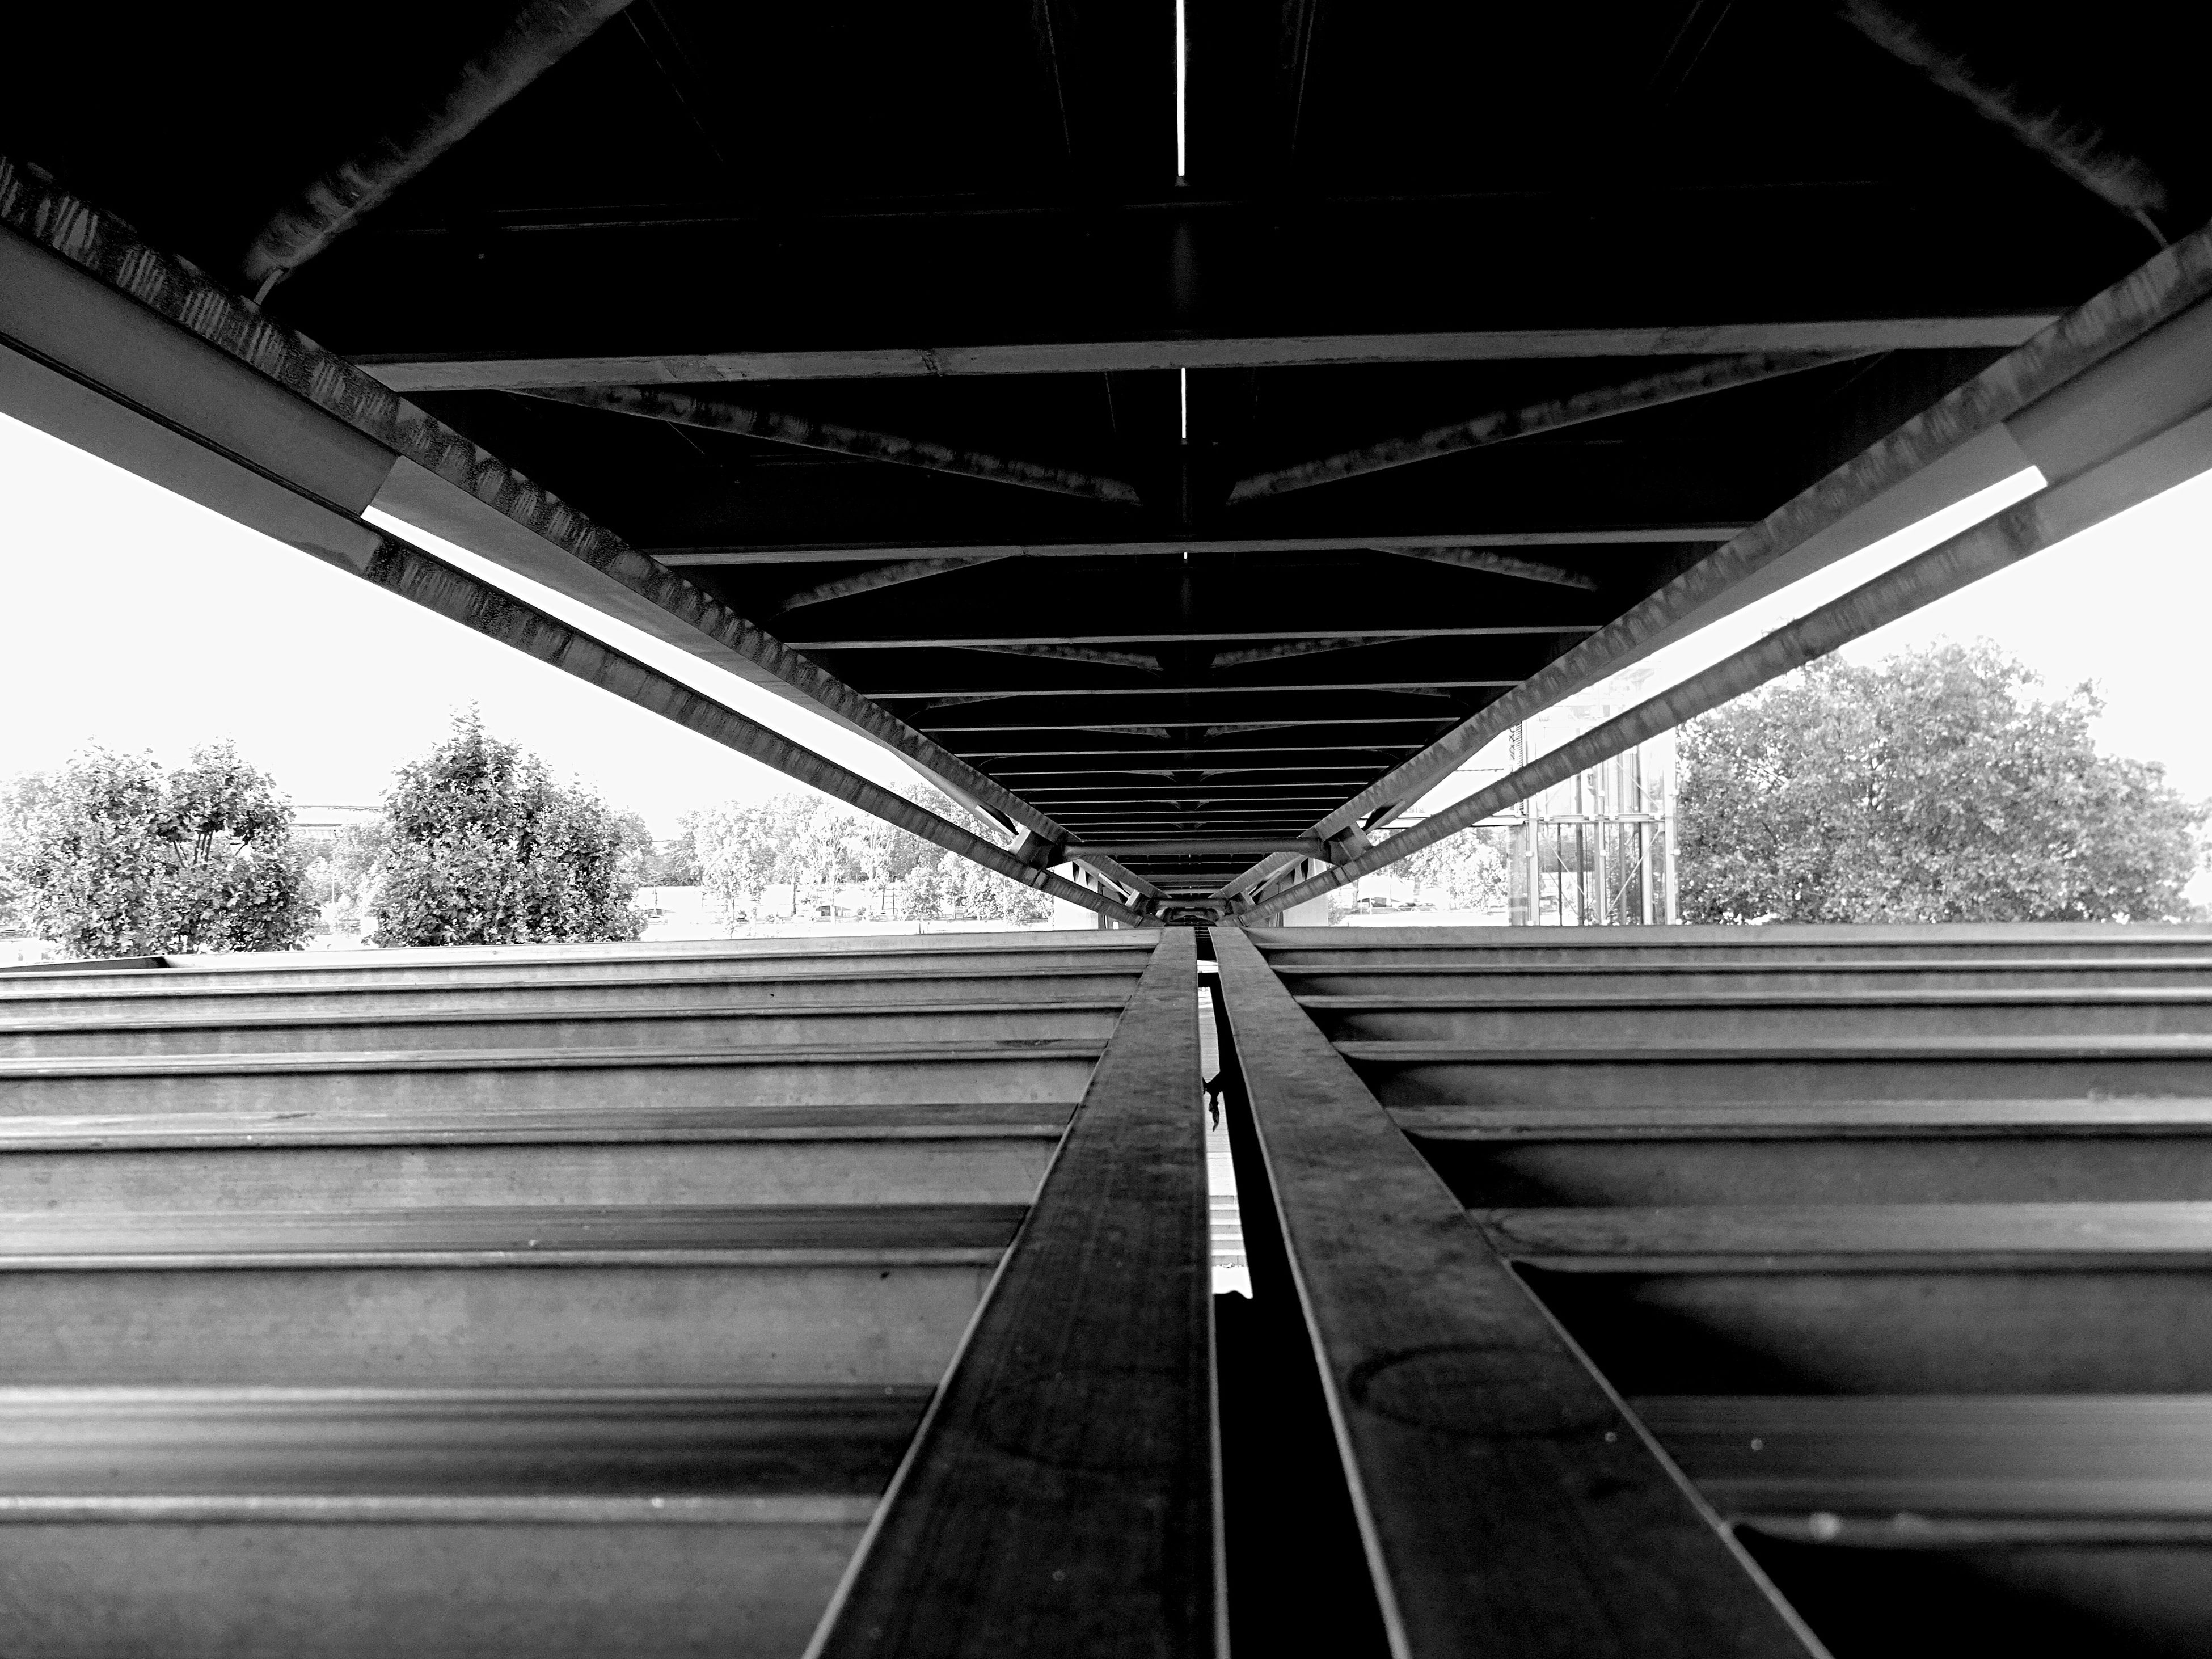 built structure, architecture, connection, low angle view, bridge - man made structure, the way forward, transportation, engineering, tree, railing, metal, diminishing perspective, sky, railroad track, bridge, metallic, support, vanishing point, sunlight, rail transportation